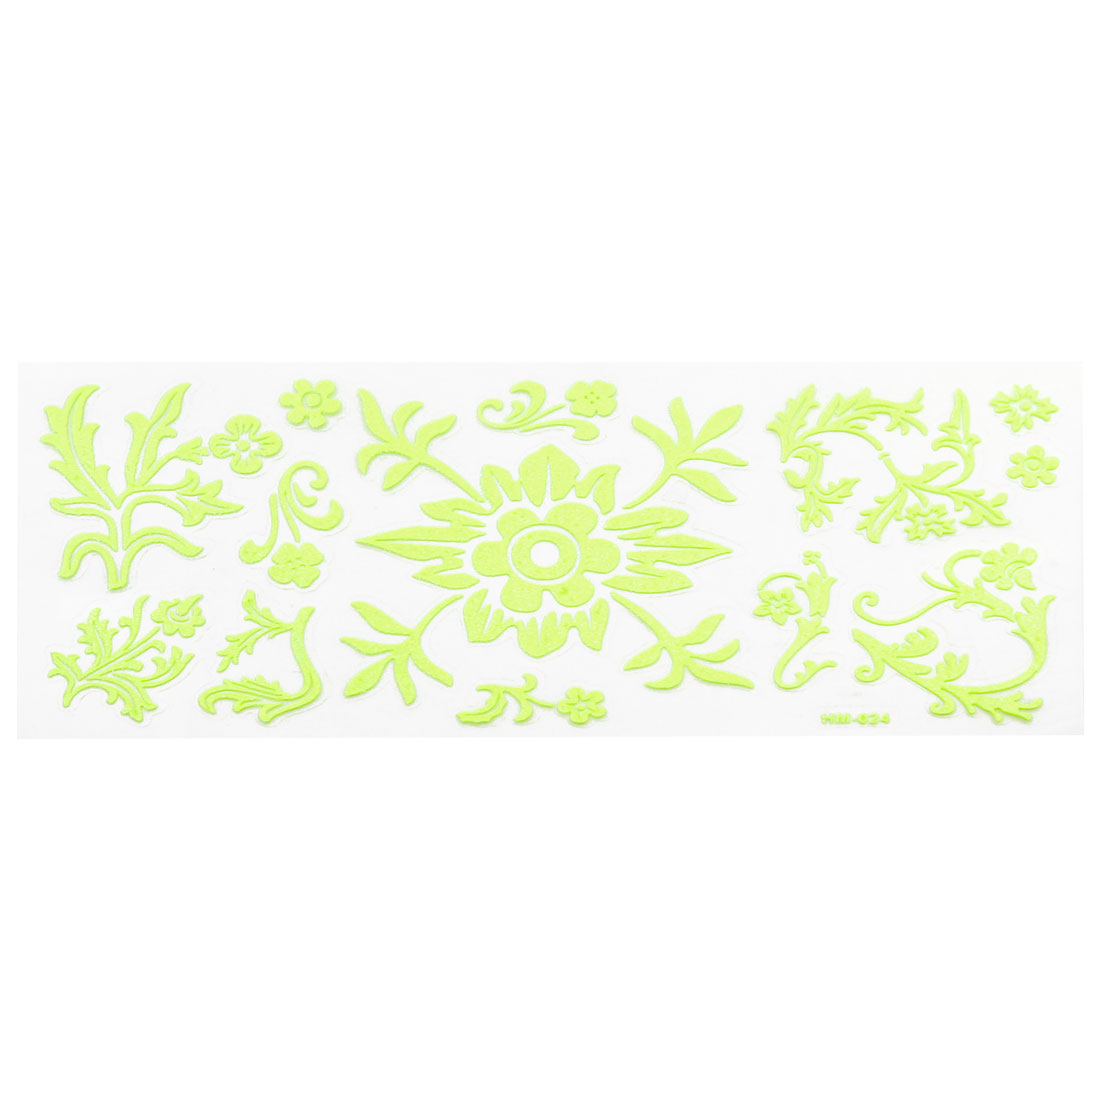 Wall Decor Flower Leaves Design Light Green Luminous Stickers 13 in 1